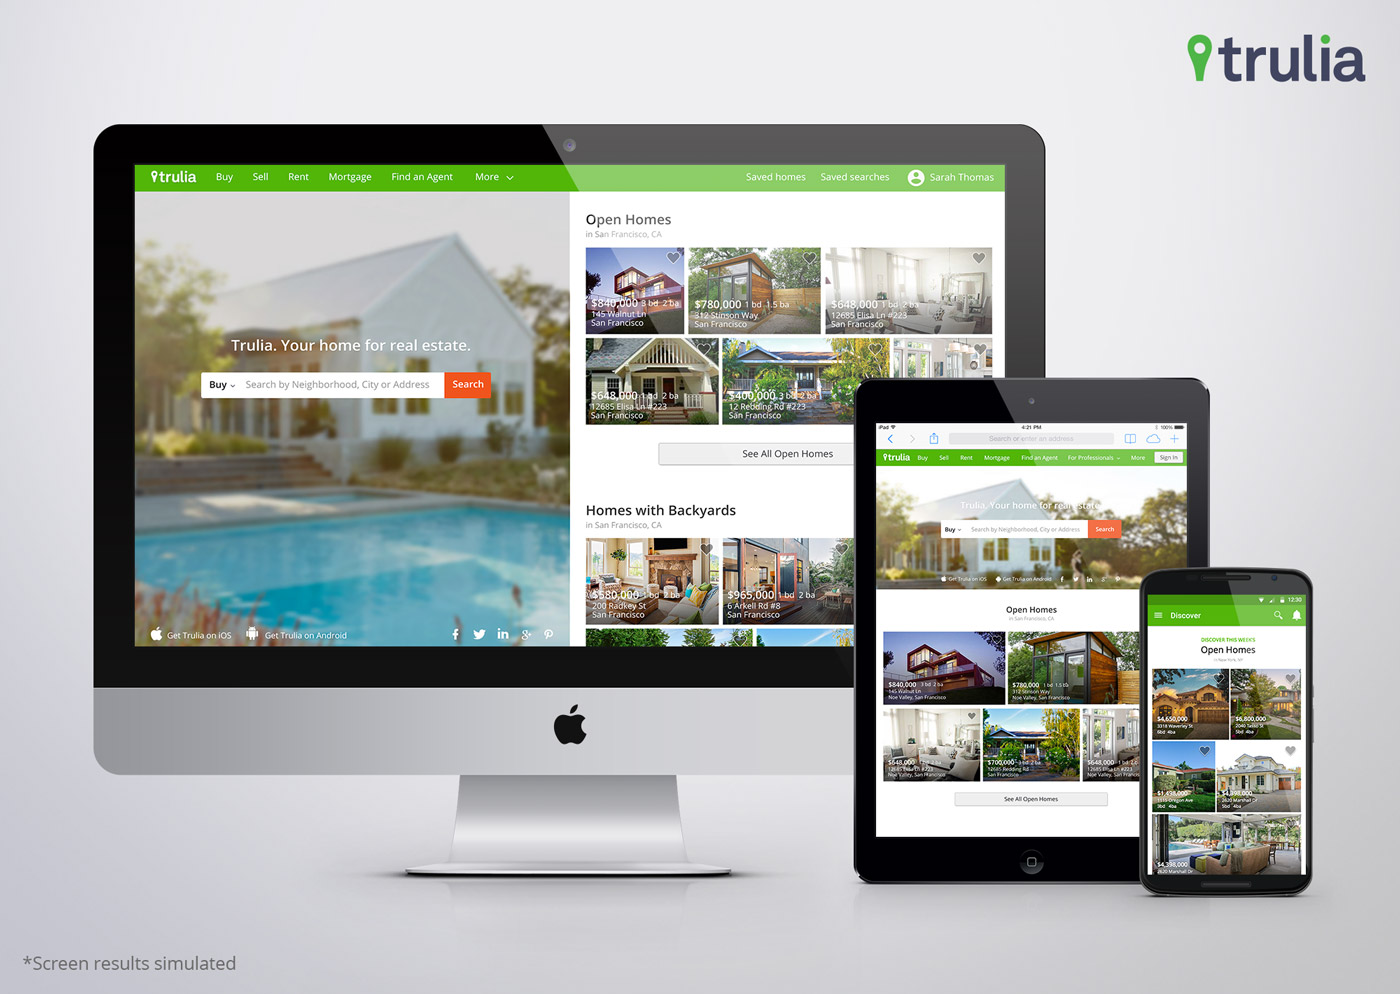 Discover your perfect home with Trulia's newest innovation.